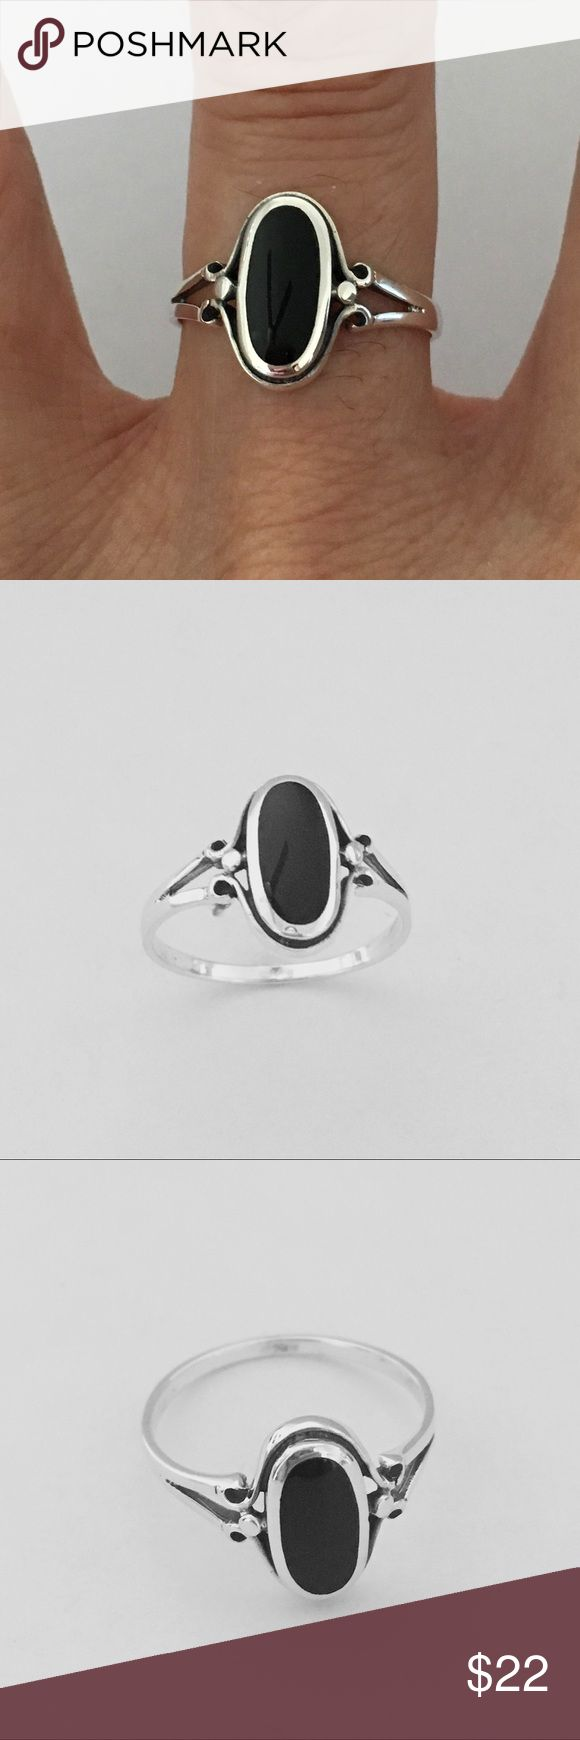 Sterling Silver Oval Black Onyx Ring Sterling Silver Black Onyx Oval Ring, Pinky Ring, Index Ring, Thumb Ring, 925 Sterling Silver, Stone Black Onyx, Face Height 13 mm Jewelry Rings